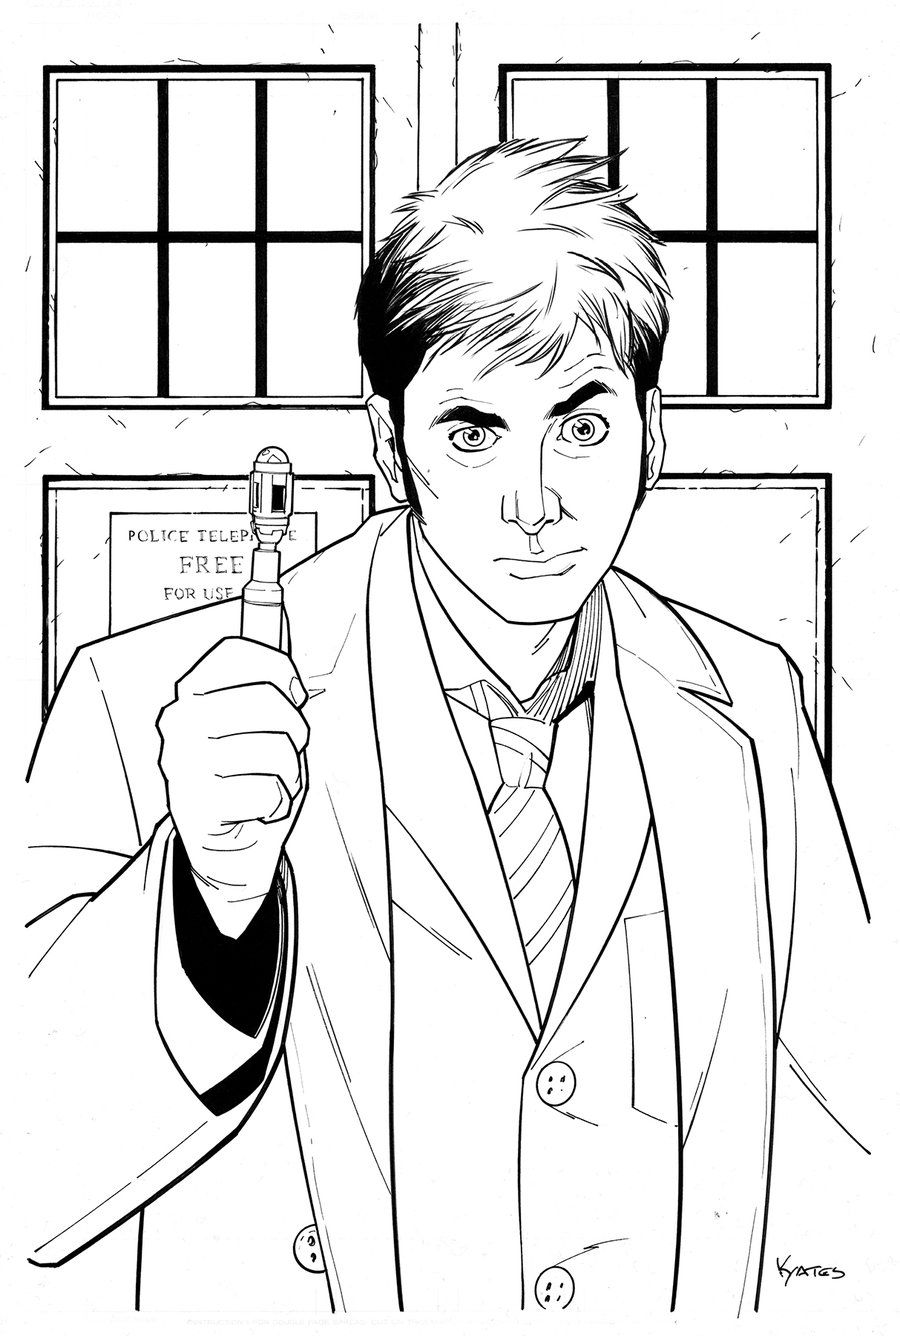 doctor who coloring pages  10th doctor whokellyyates